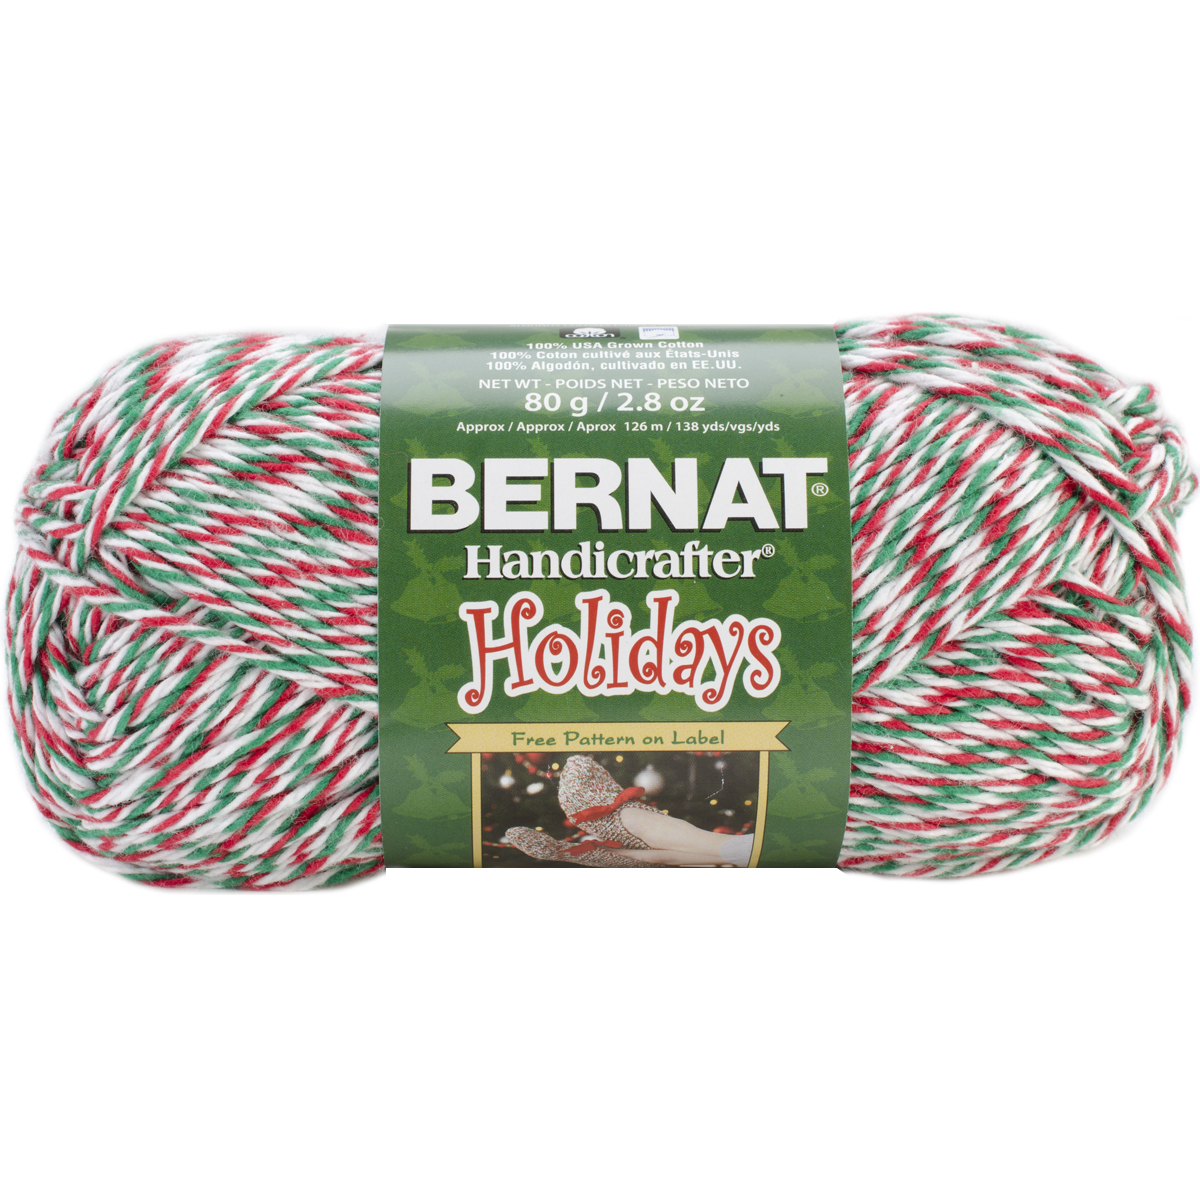 Bernat Handicrafter Holidays Twists Christmas Yarn, Yuletide Twists